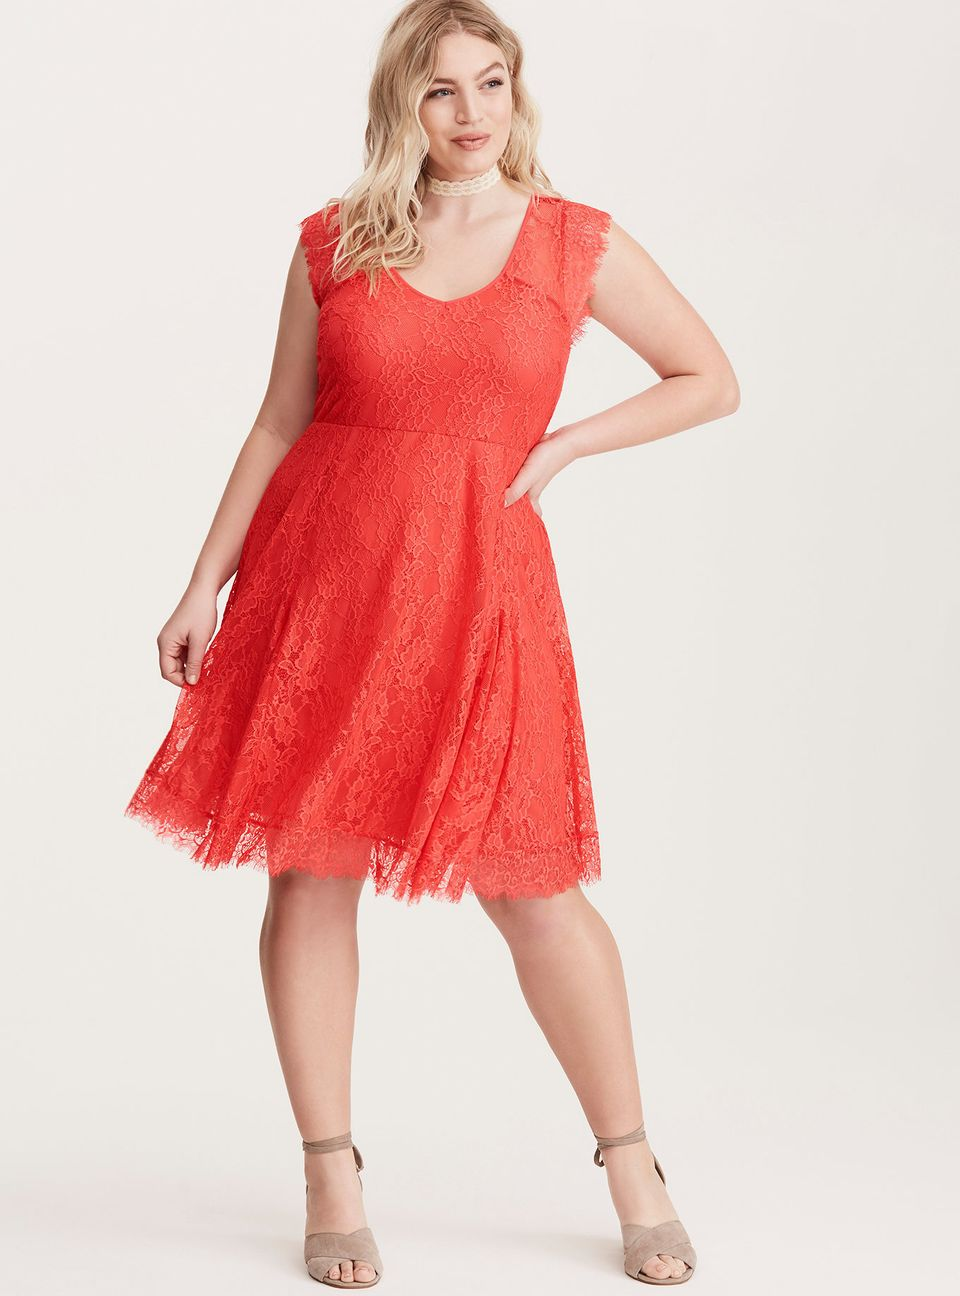 956c8baa8f5 What To Wear To An Afternoon Bridal Shower